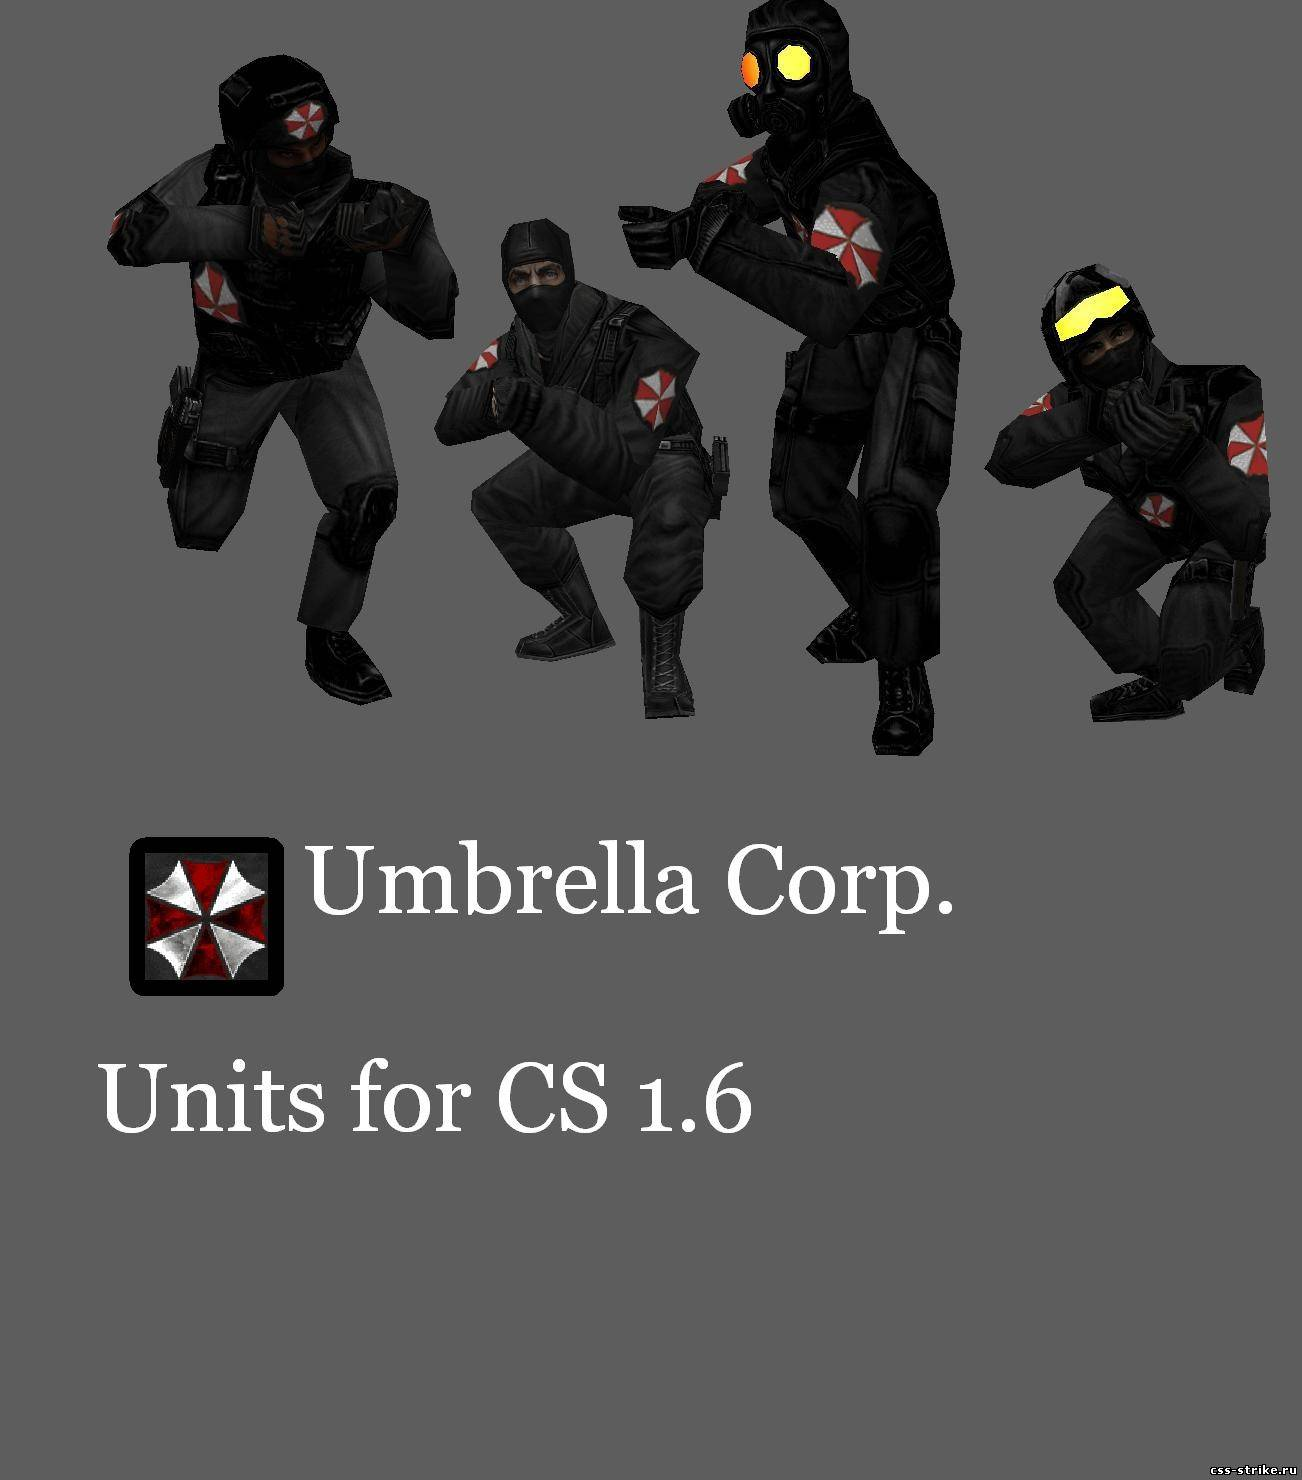 Umbrella corporation units